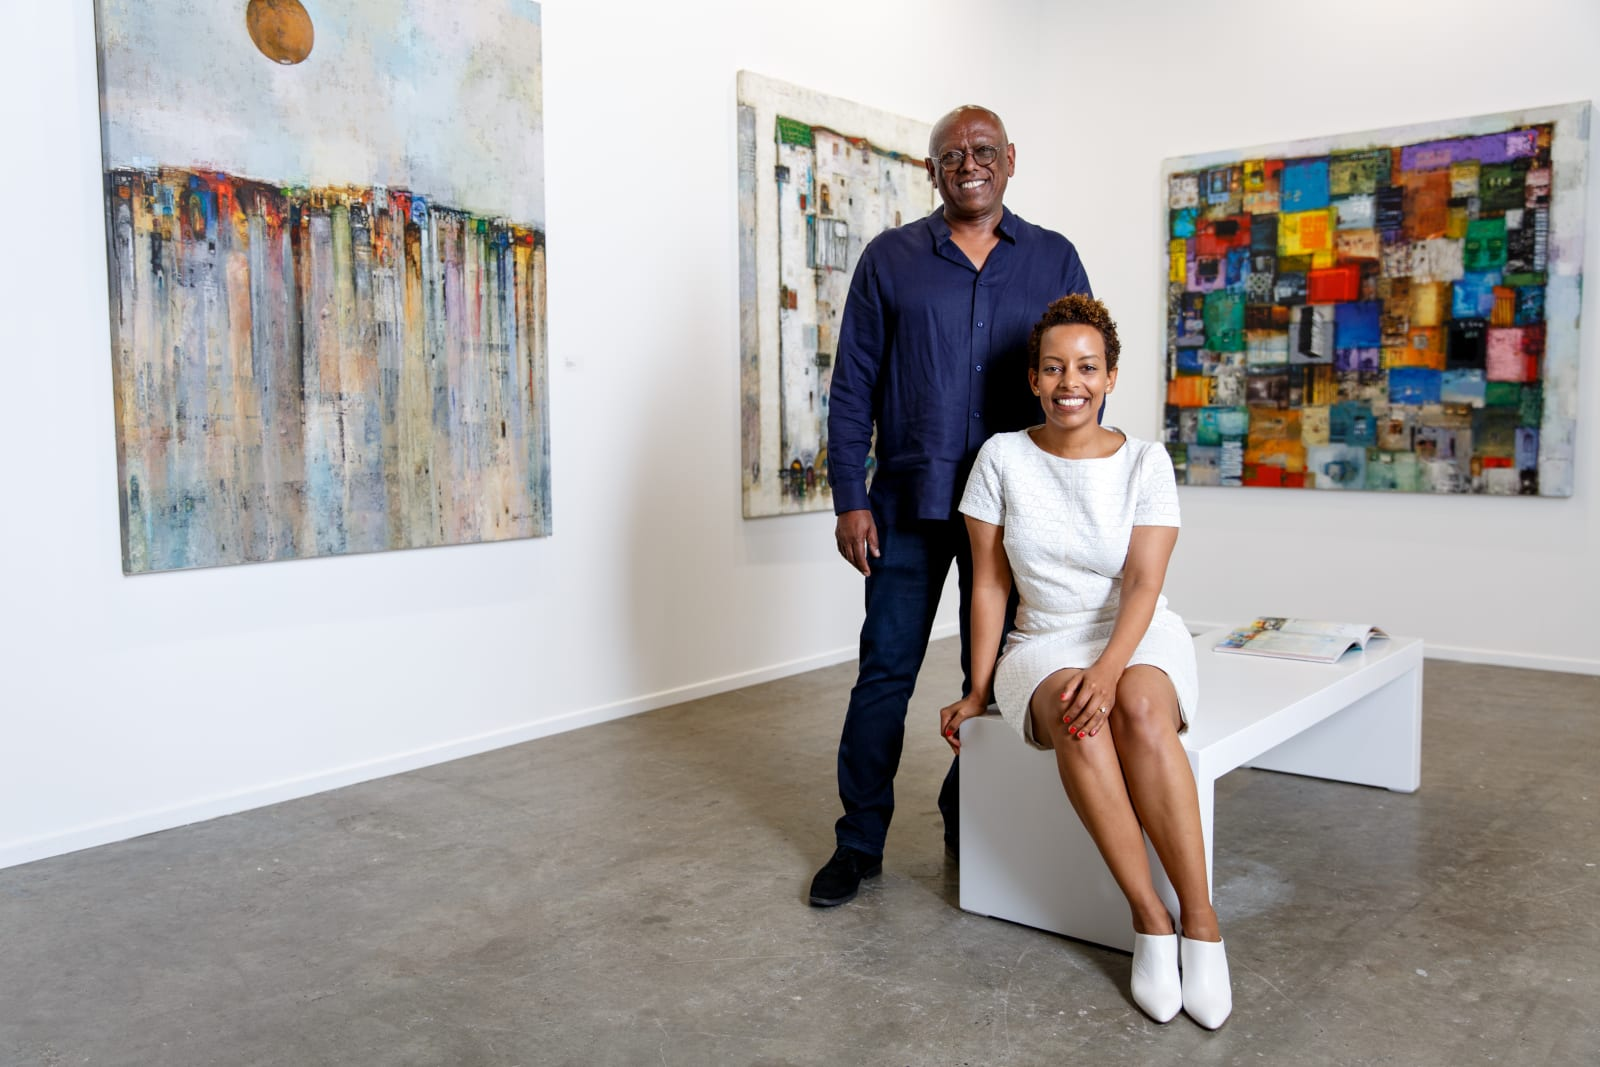 Addis Fine Art Founders Mesai Haileleul and Rakeb Sile. Courtesy of Addis Fine Art